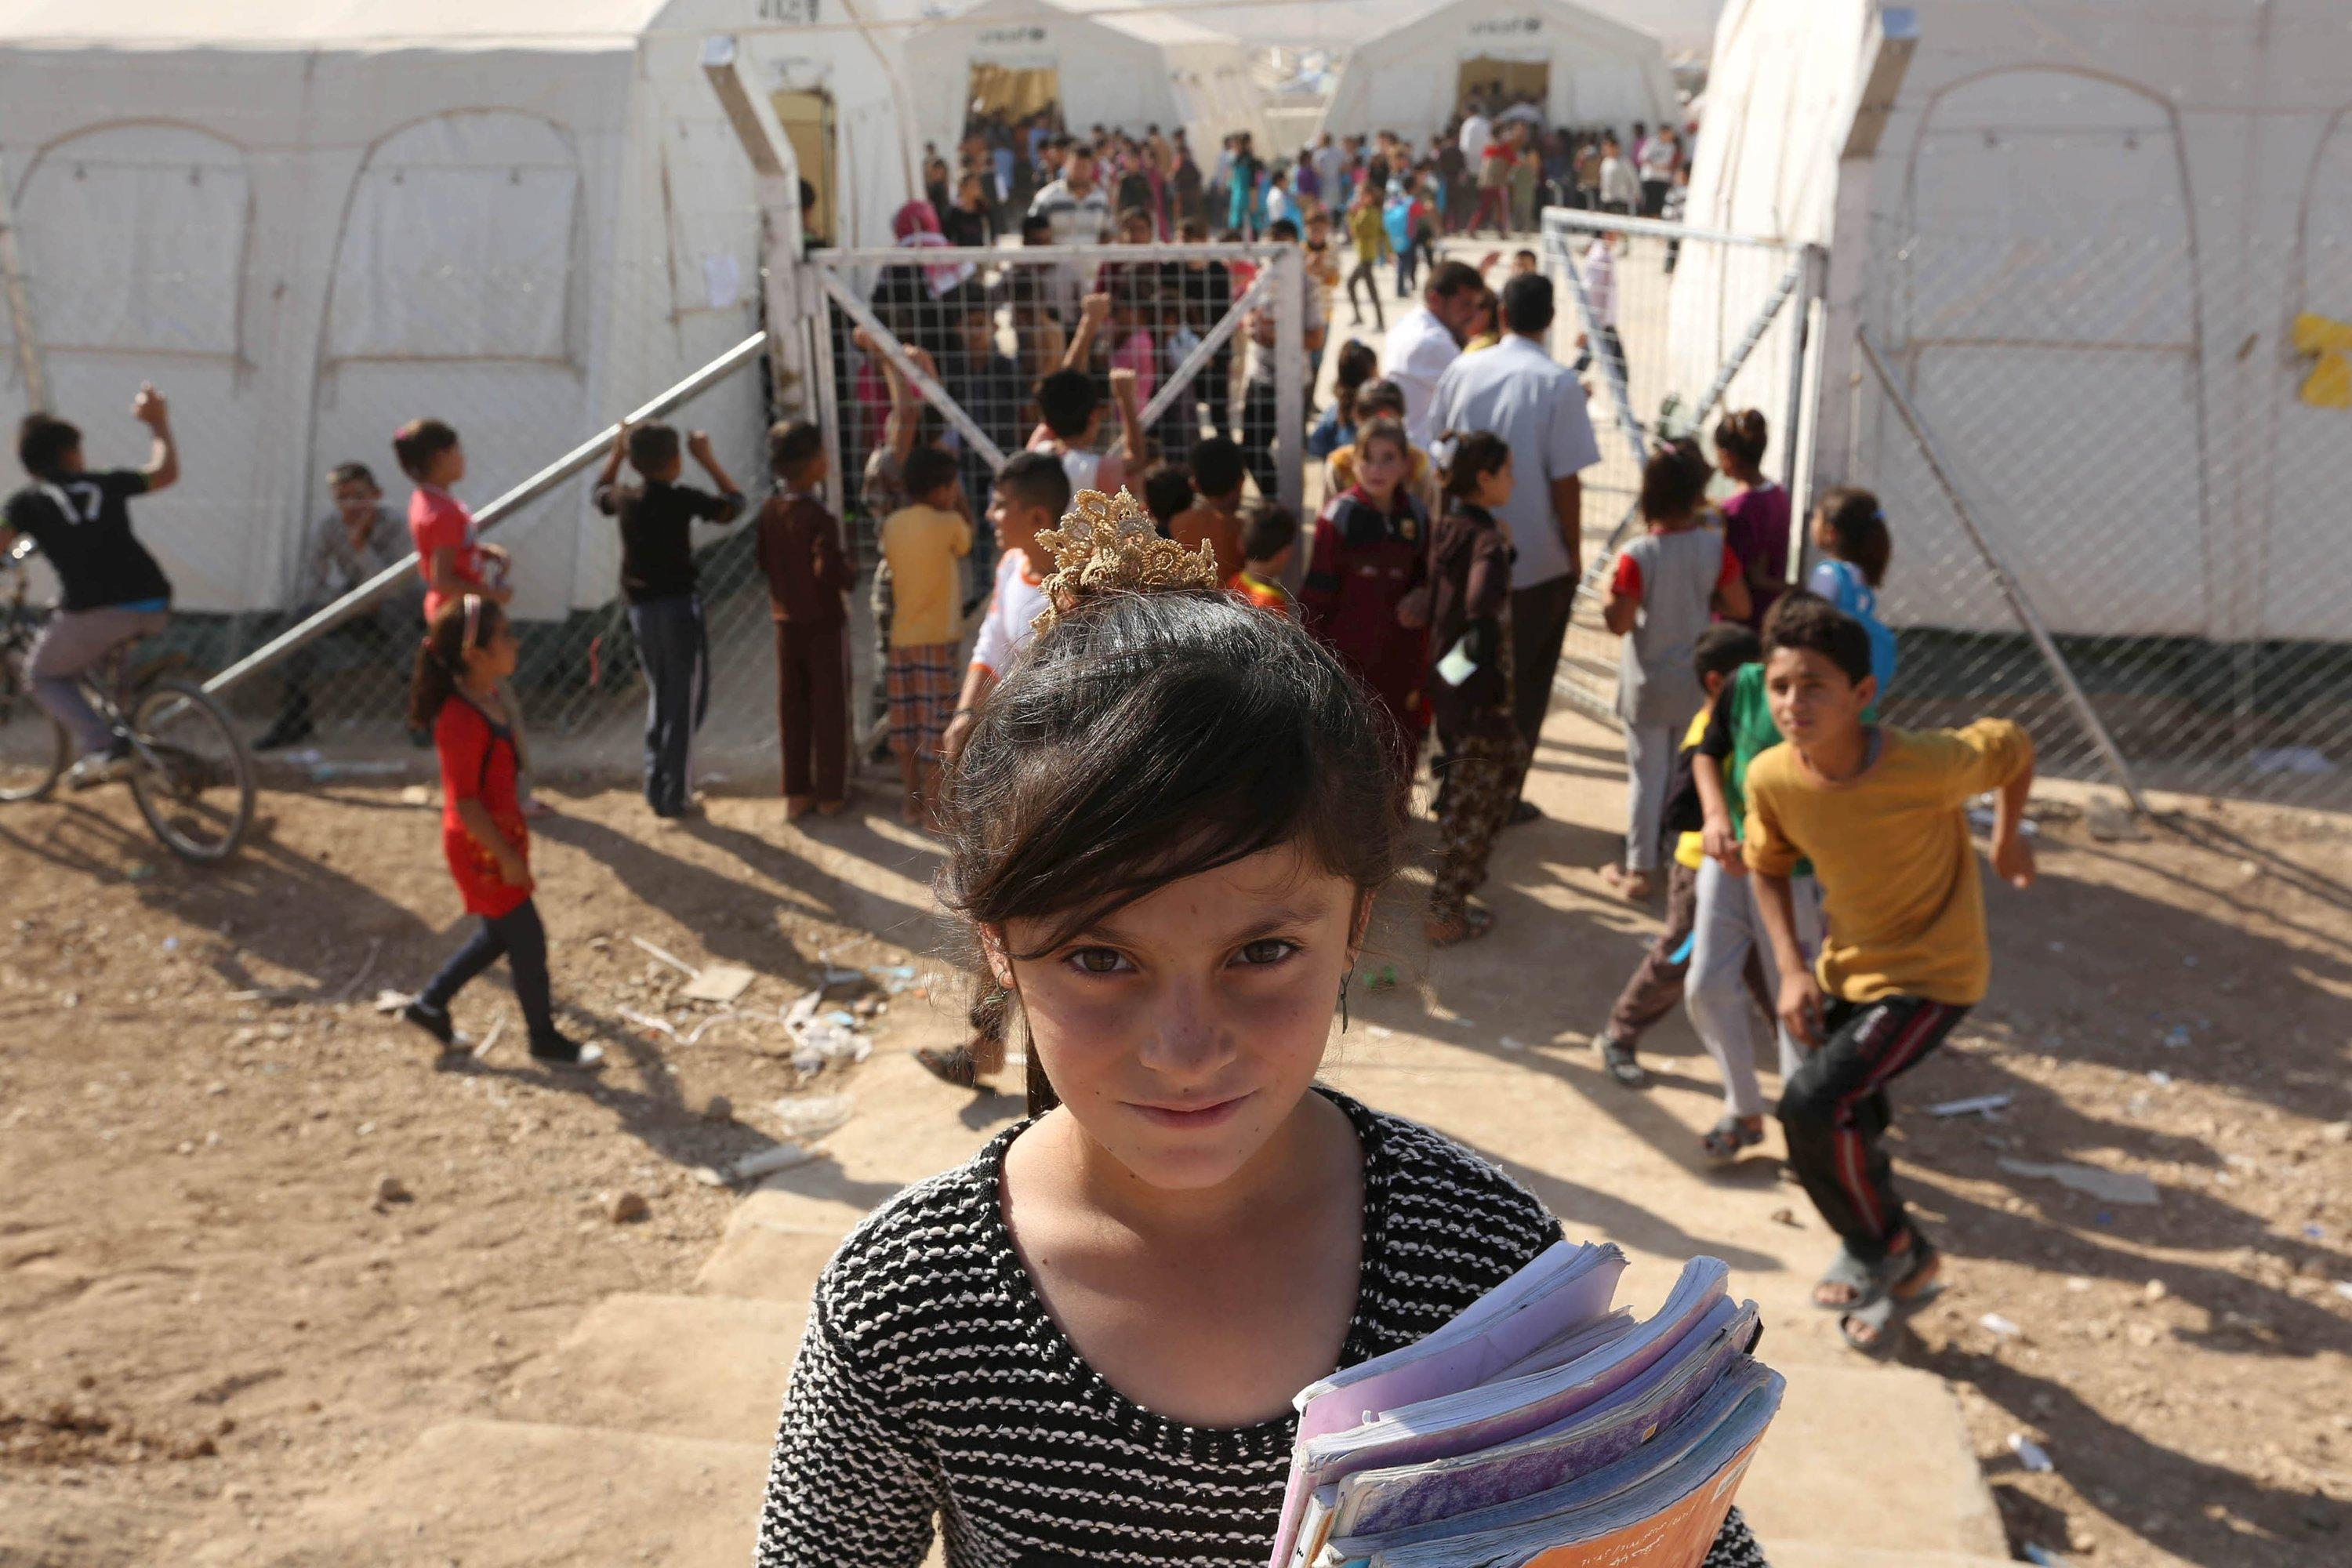 A Yazidi refugee girl from the minority Yazidi sect poses for a photograph on the first day of the new school term at Sharya refugee camp, on the outskirts of Duhok province, October 17, 2015. REUTERS/Ari JalaFOR EDITORIAL USE ONLY. NO RESALES. NO ARCHIVE.